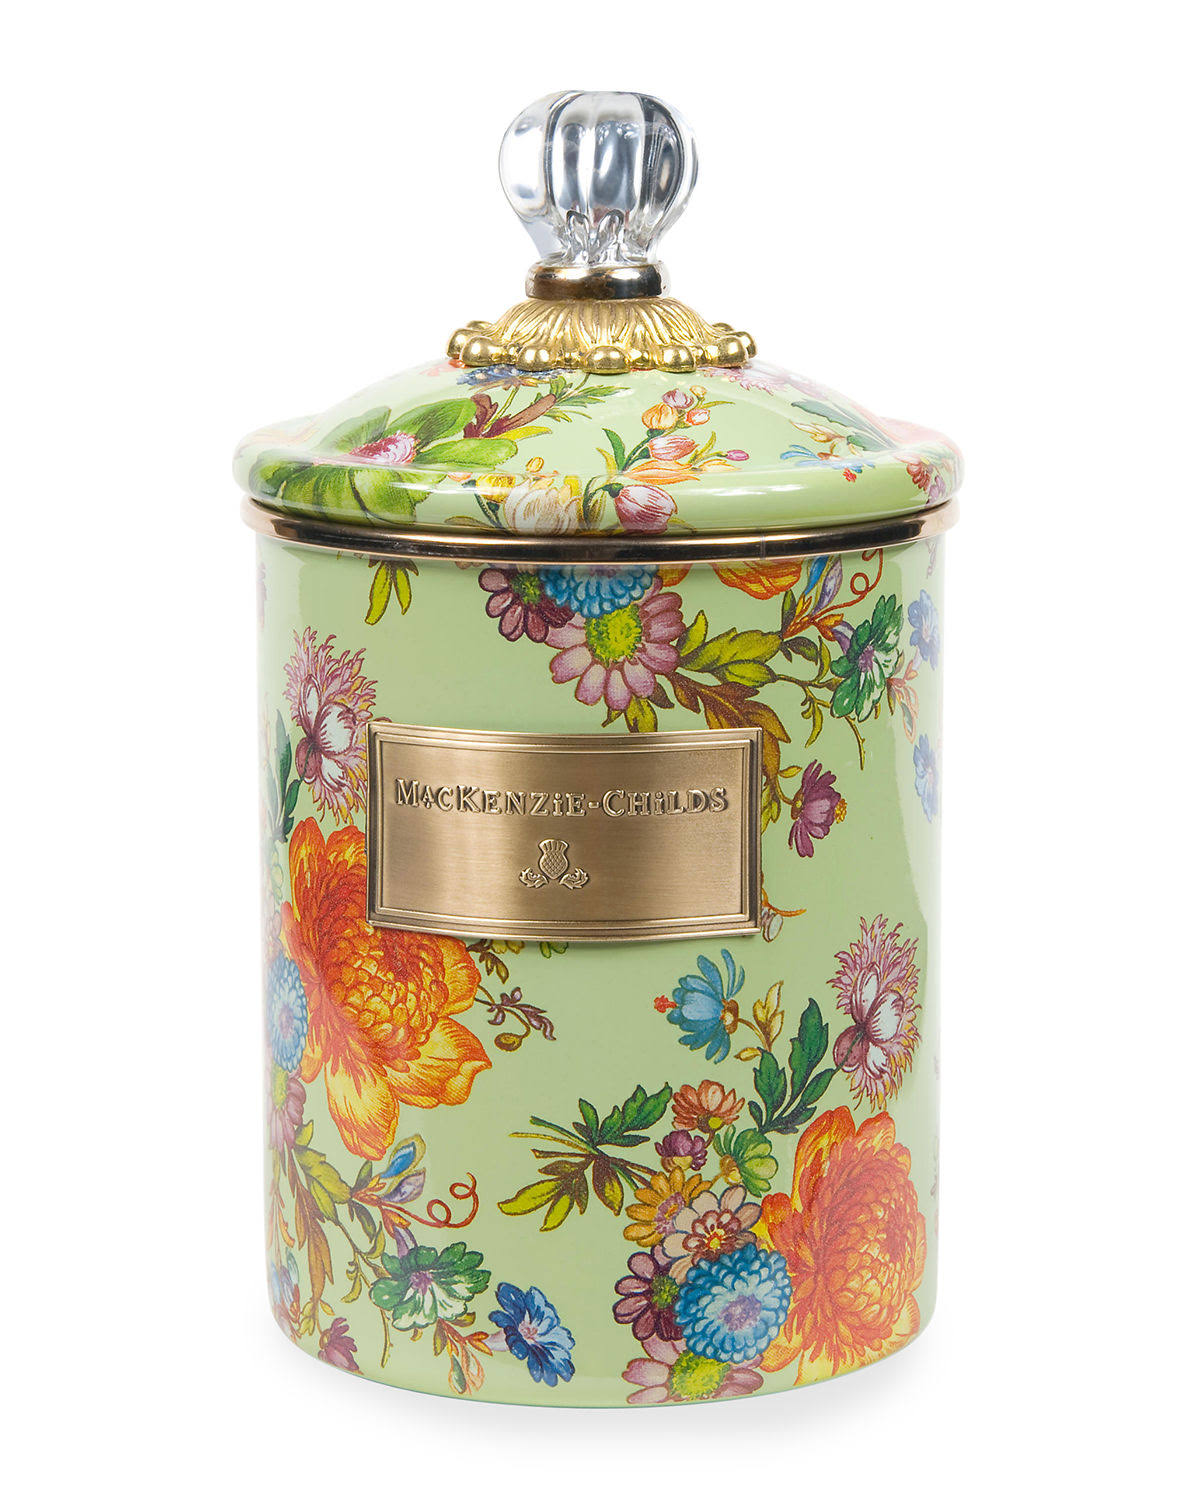 MacKenzie-Childs Flower Market Medium Canister - Green